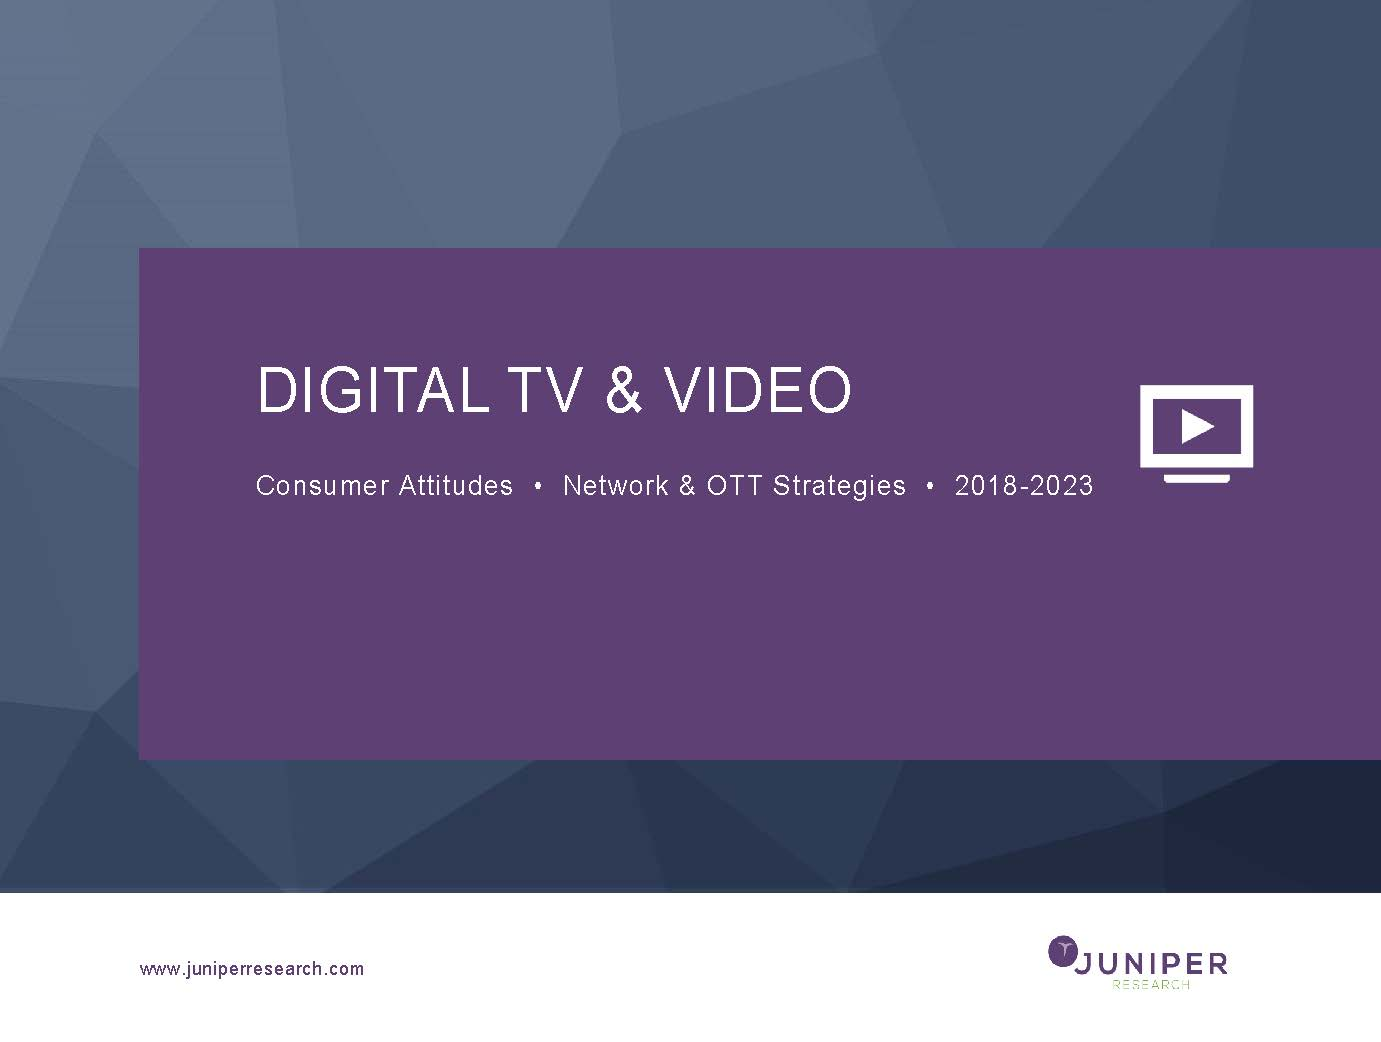 Digital TV & Video